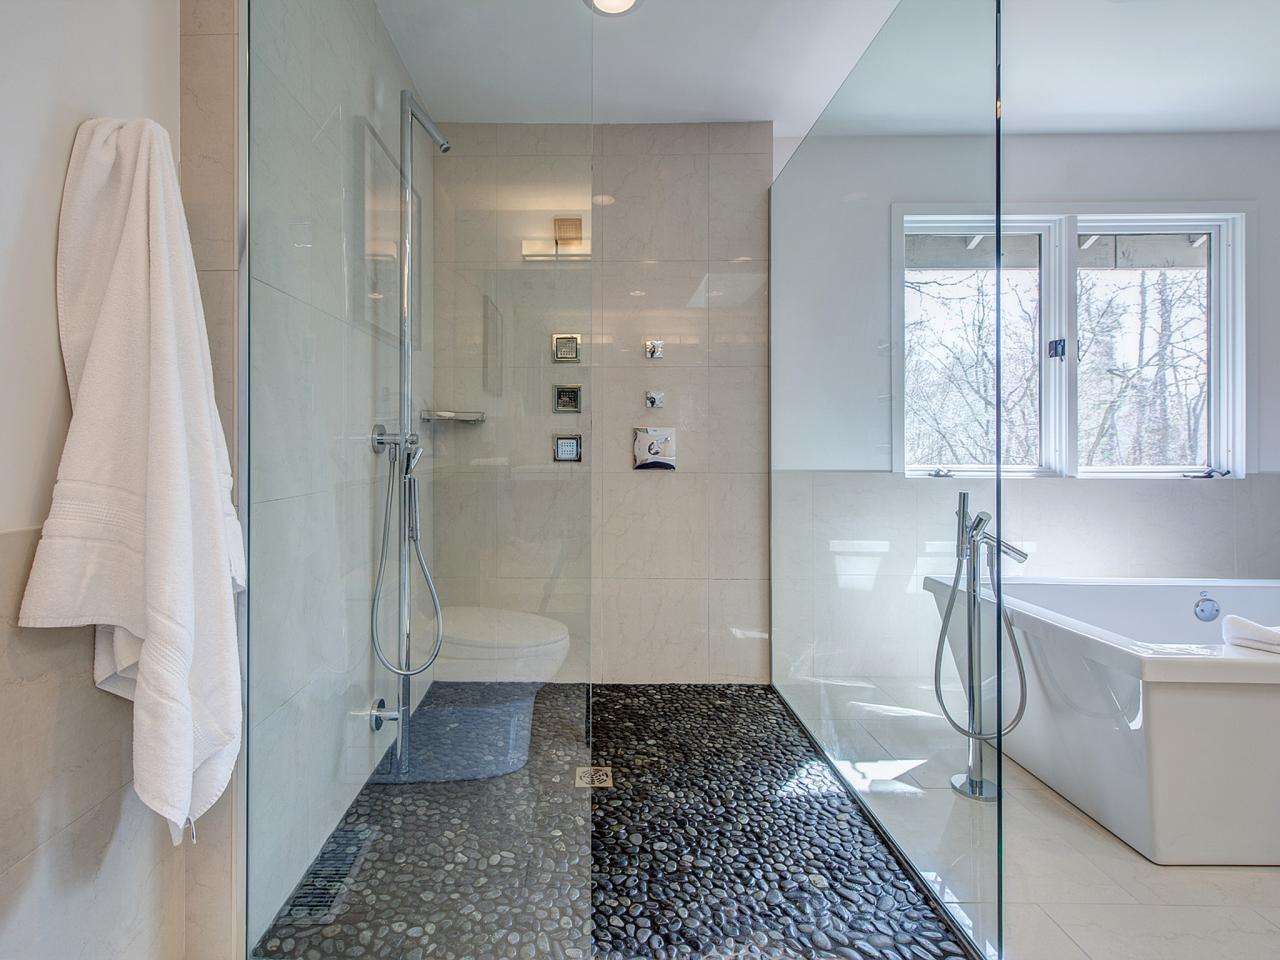 RS_Joni-Spear-white-contemporary-bathroom-shower_h.jpg.rend.hgtvcom.1280.960 (1)